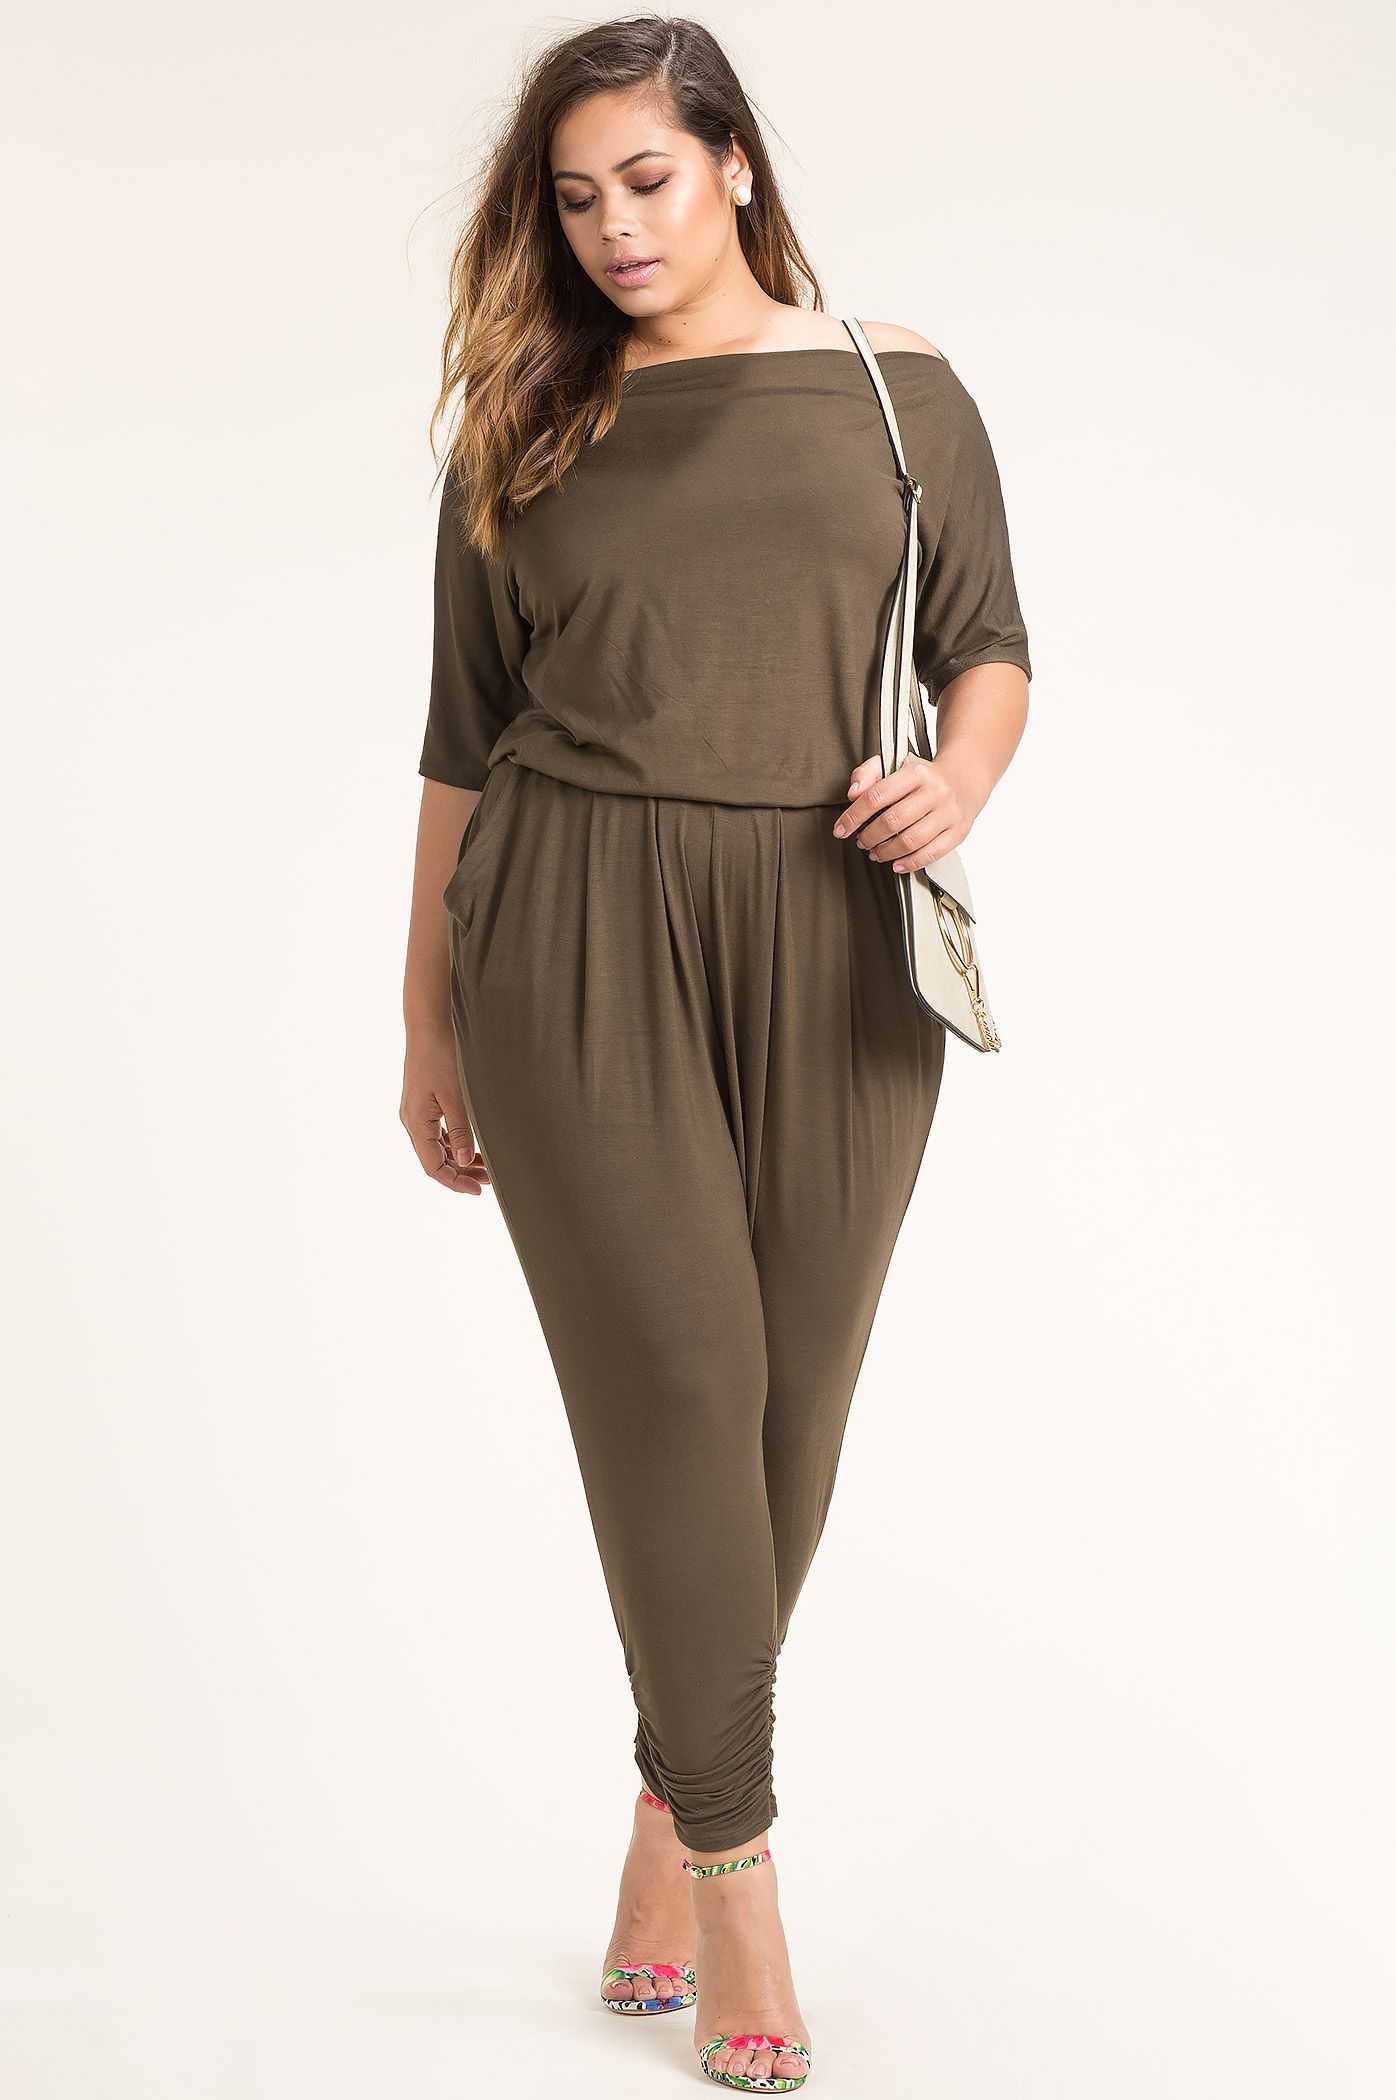 83b8304b738 Women s Plus Size Jumpsuits